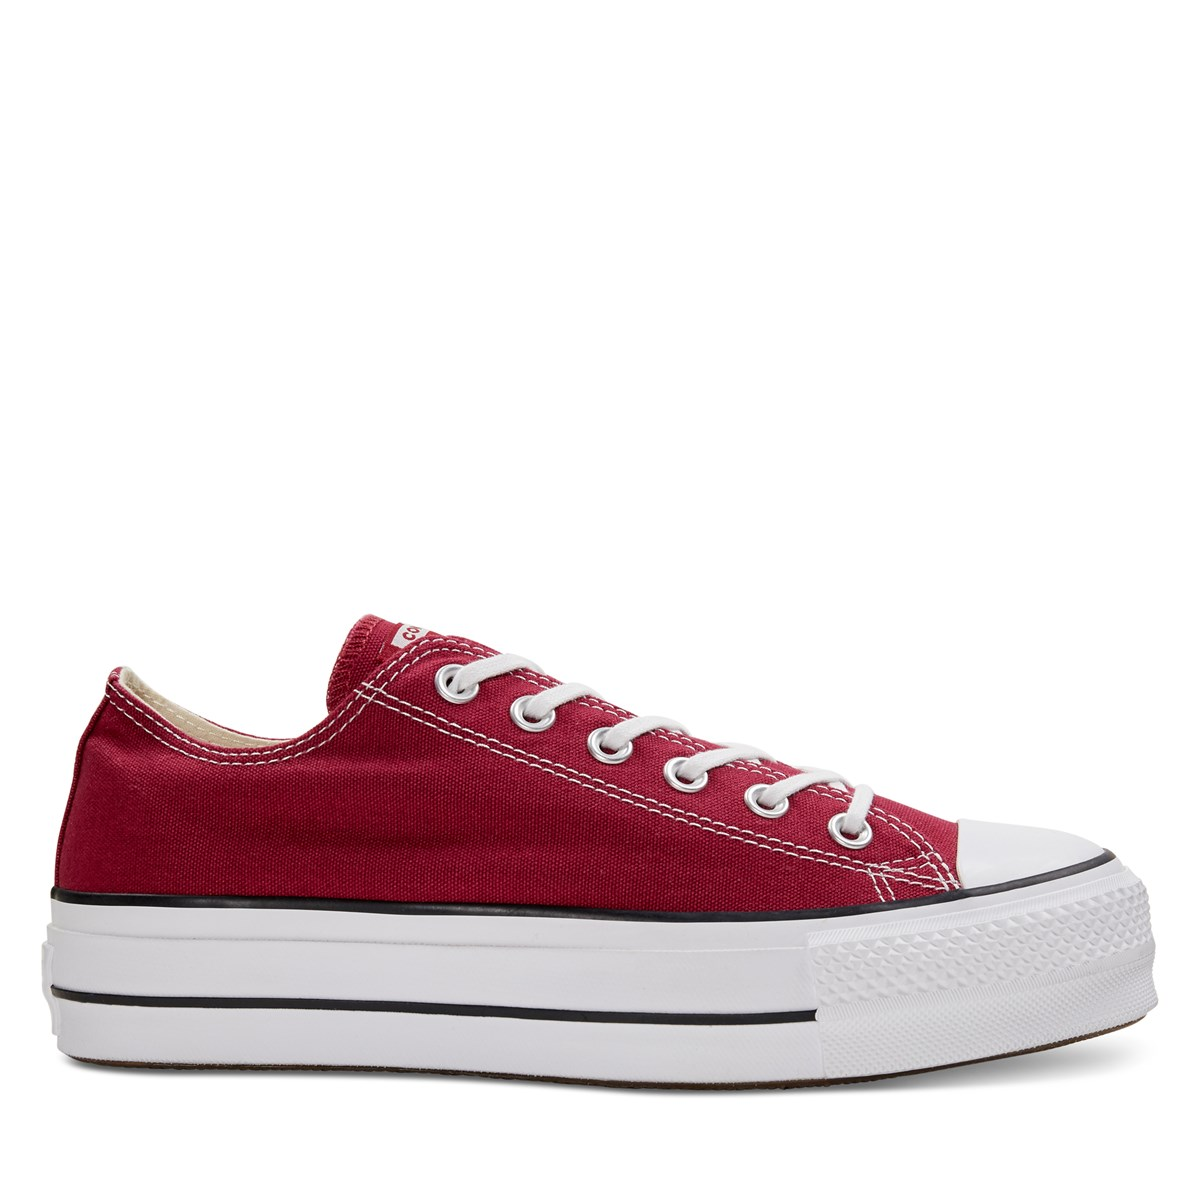 Women's Chuck Taylor All Star Lift Sneaker in Red